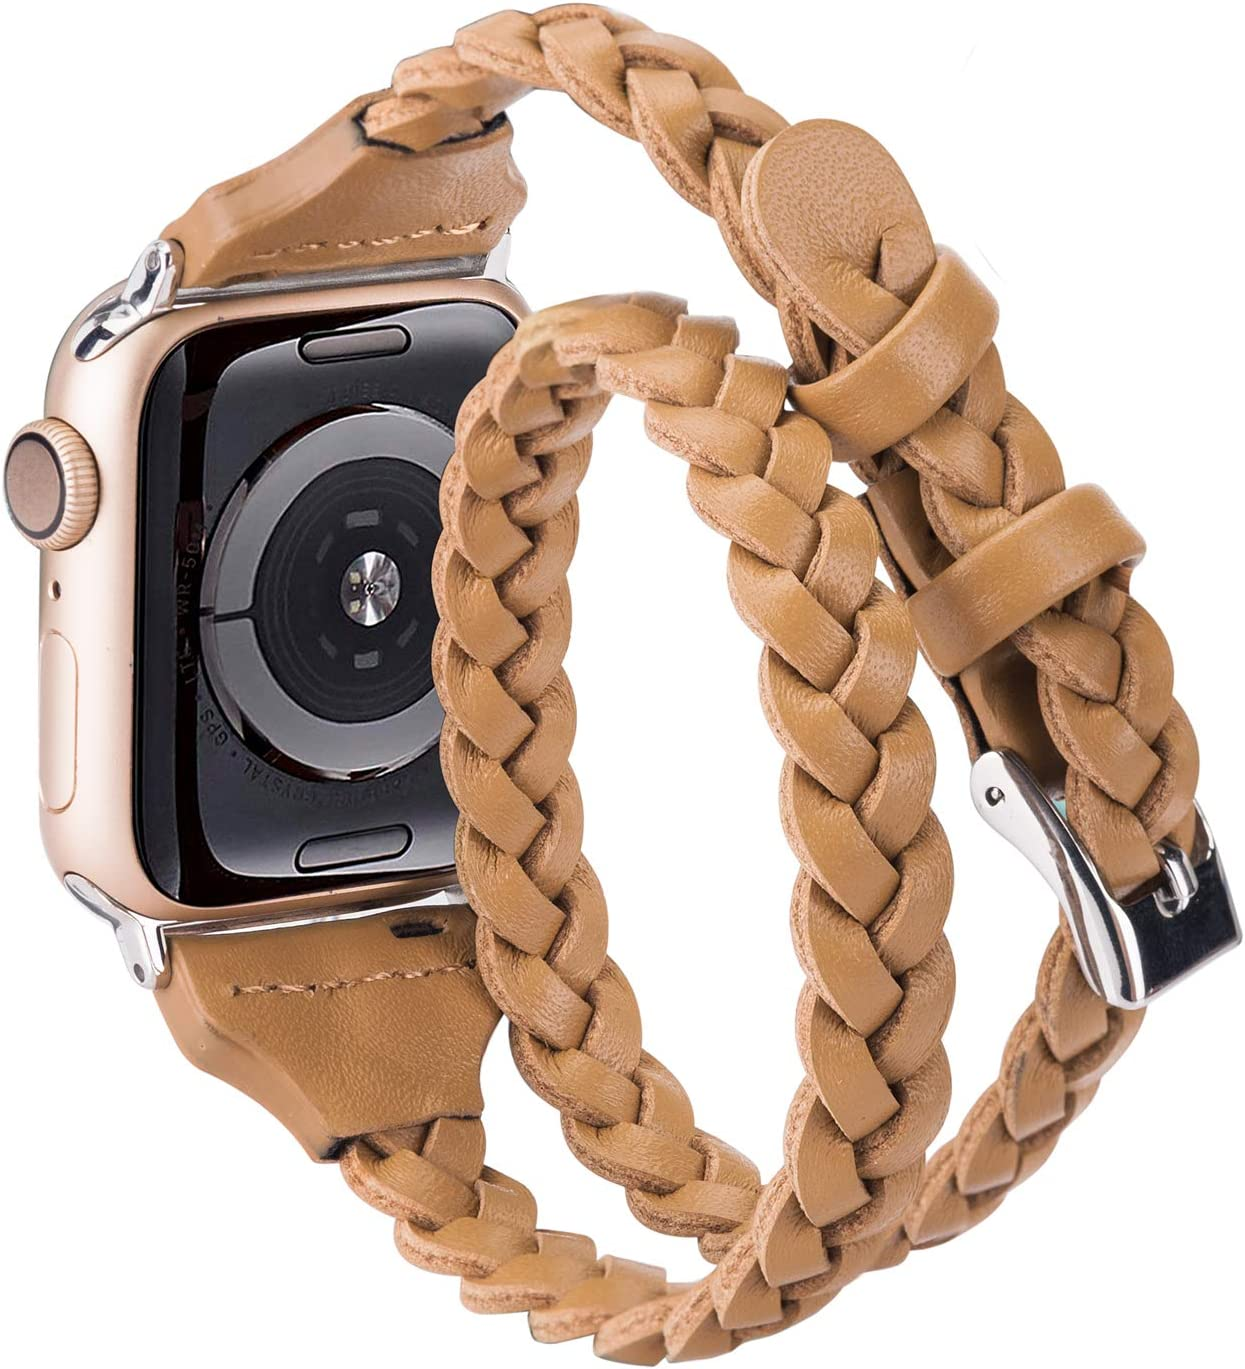 Moolia Double Leather Band Compatible with Apple Watch 38mm 40mm, Women Girls Woven Slim Leather Watch Strap Double Tour Bracelet Replacement for iWatch Series 6 5 4 3 2 1 (Light Brown, 38mm/40mm)